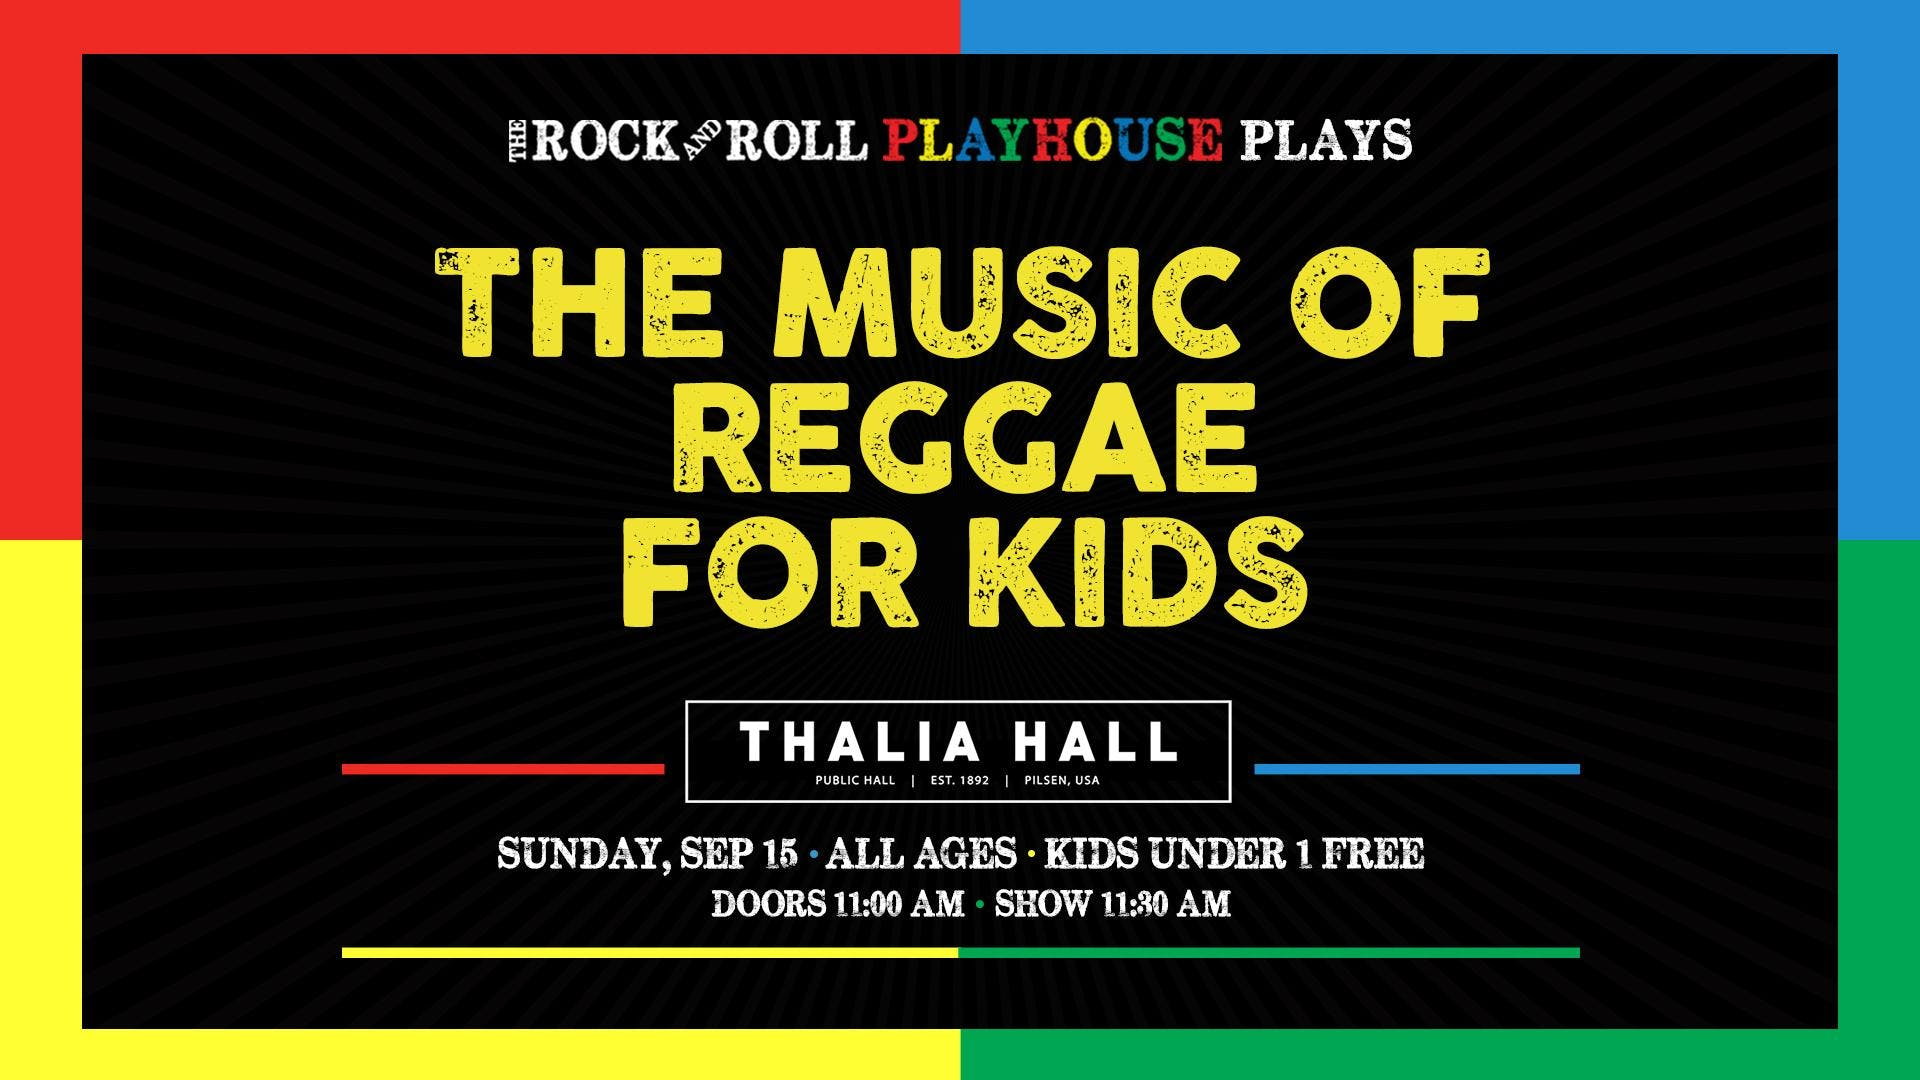 The Rock and Roll Playhouse presents: The Music of Reggae for Kids